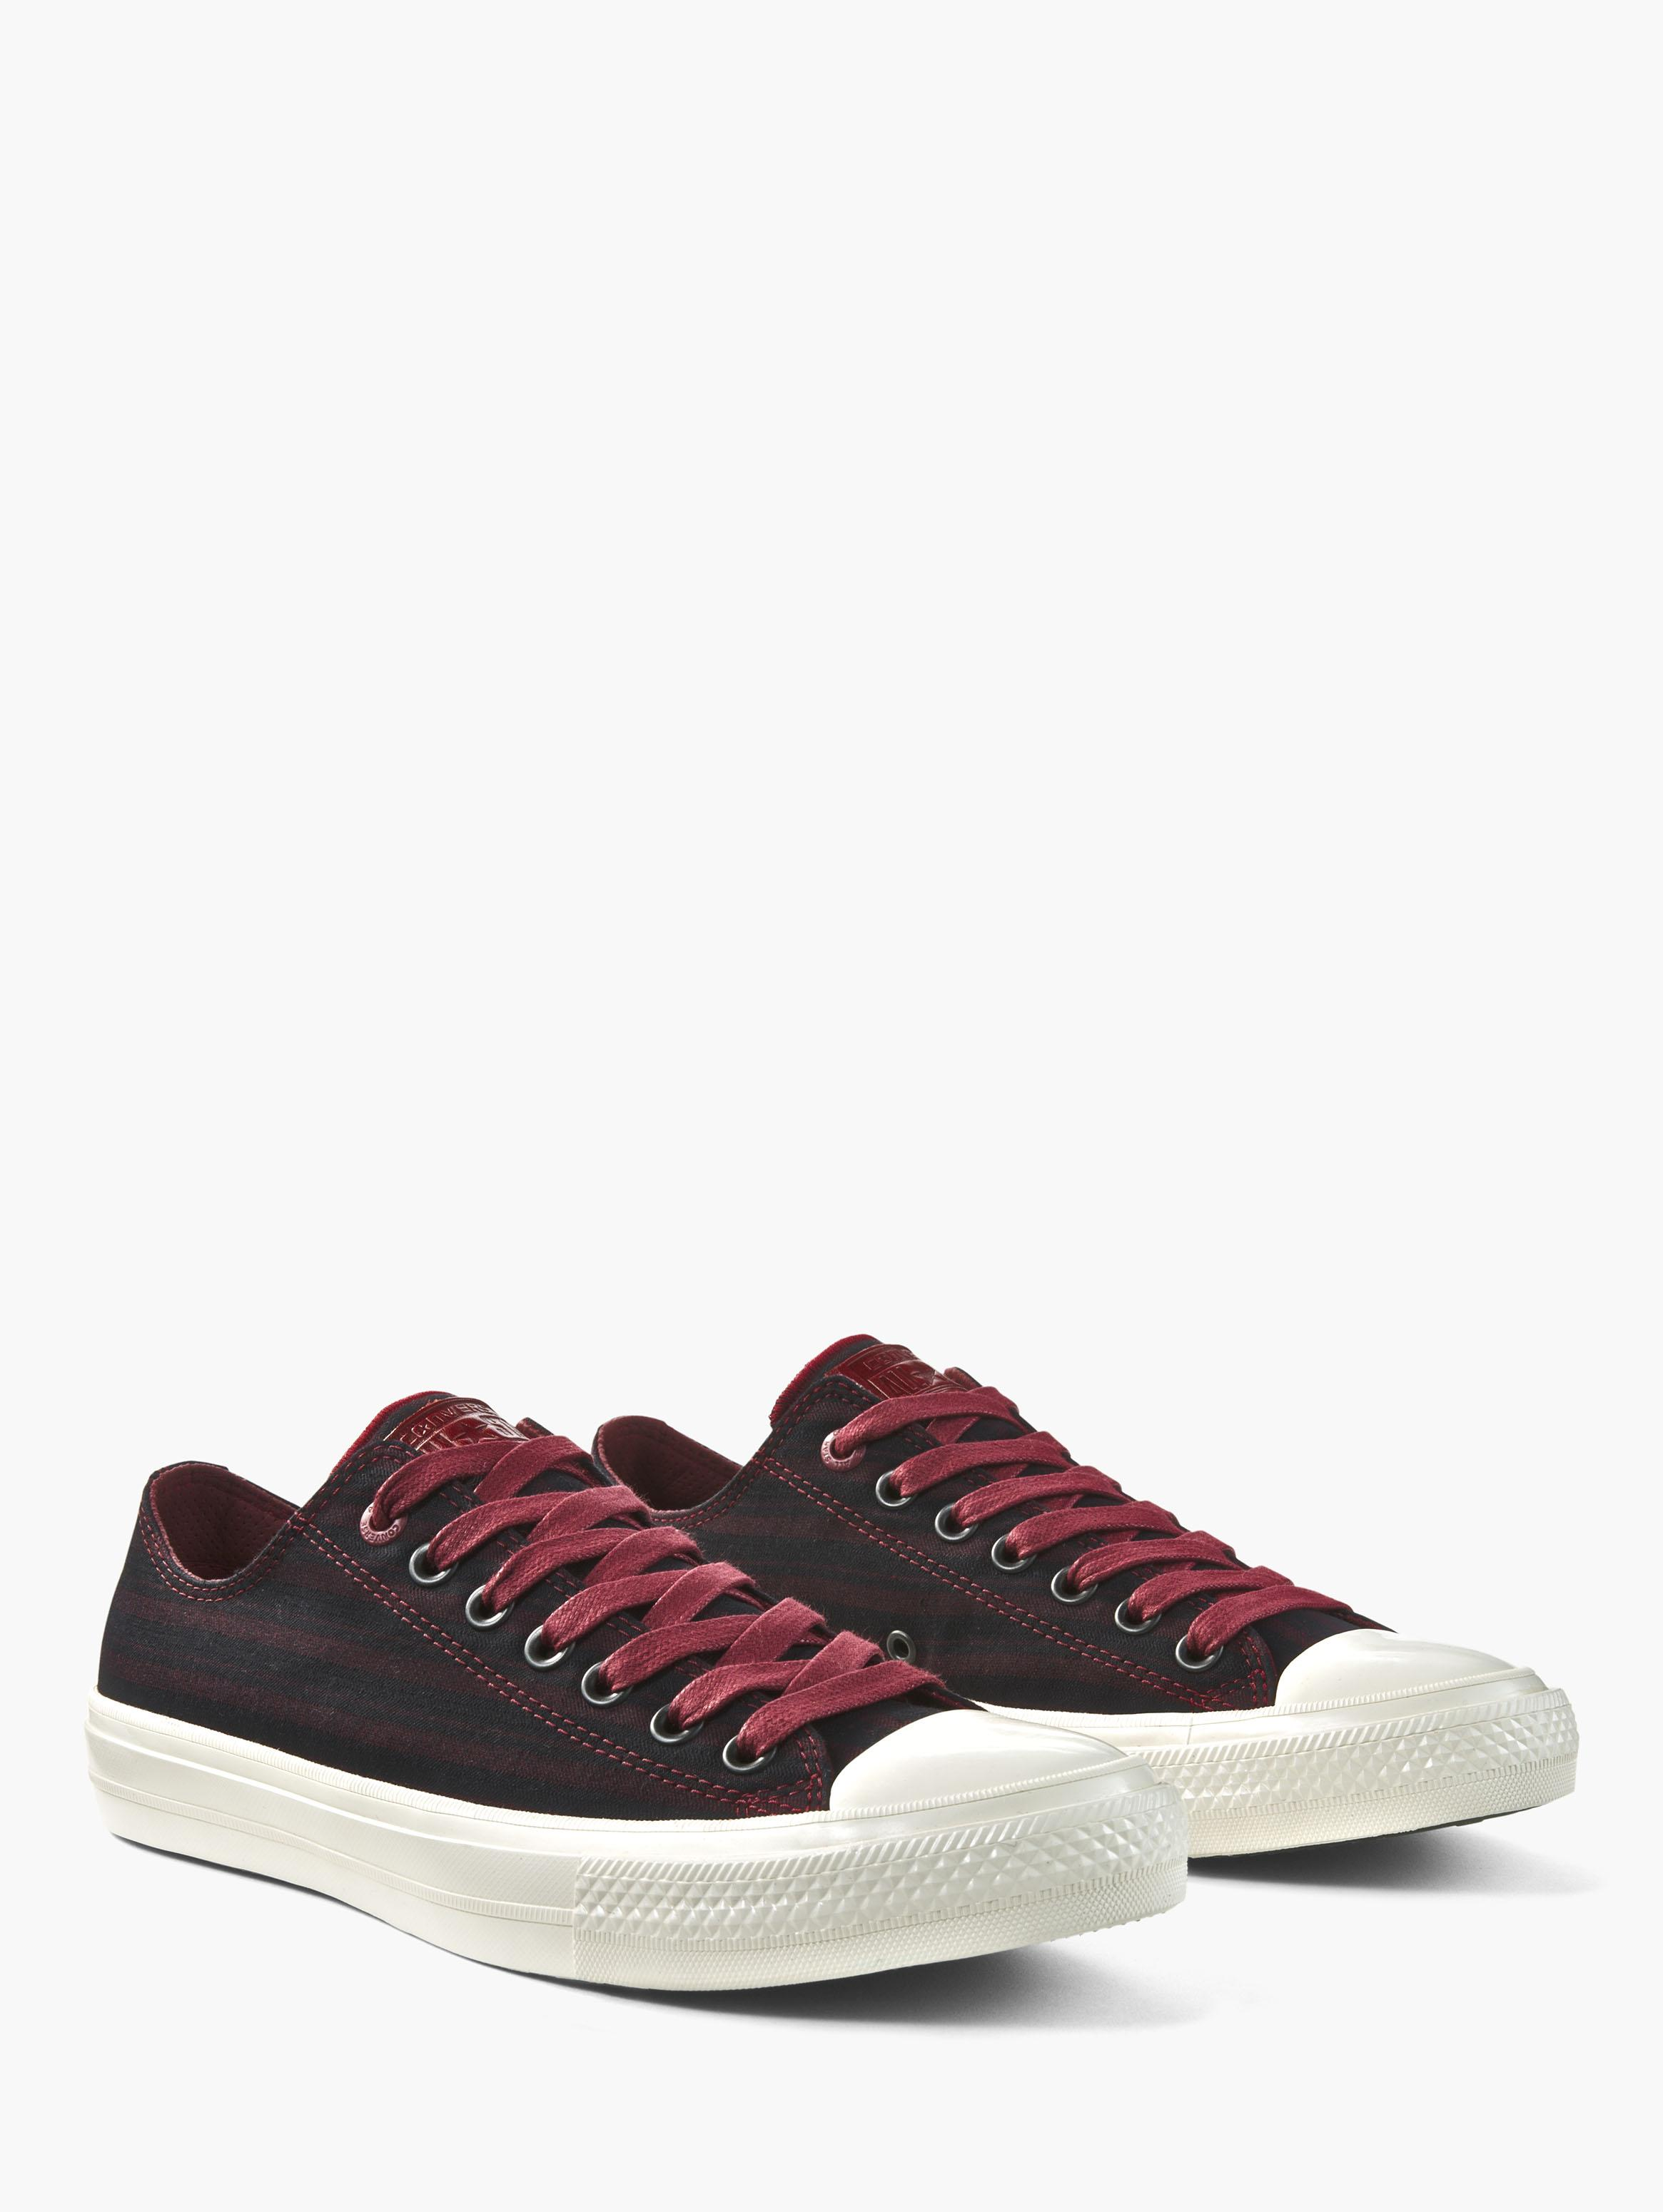 Chuck Taylor Striped Low Top